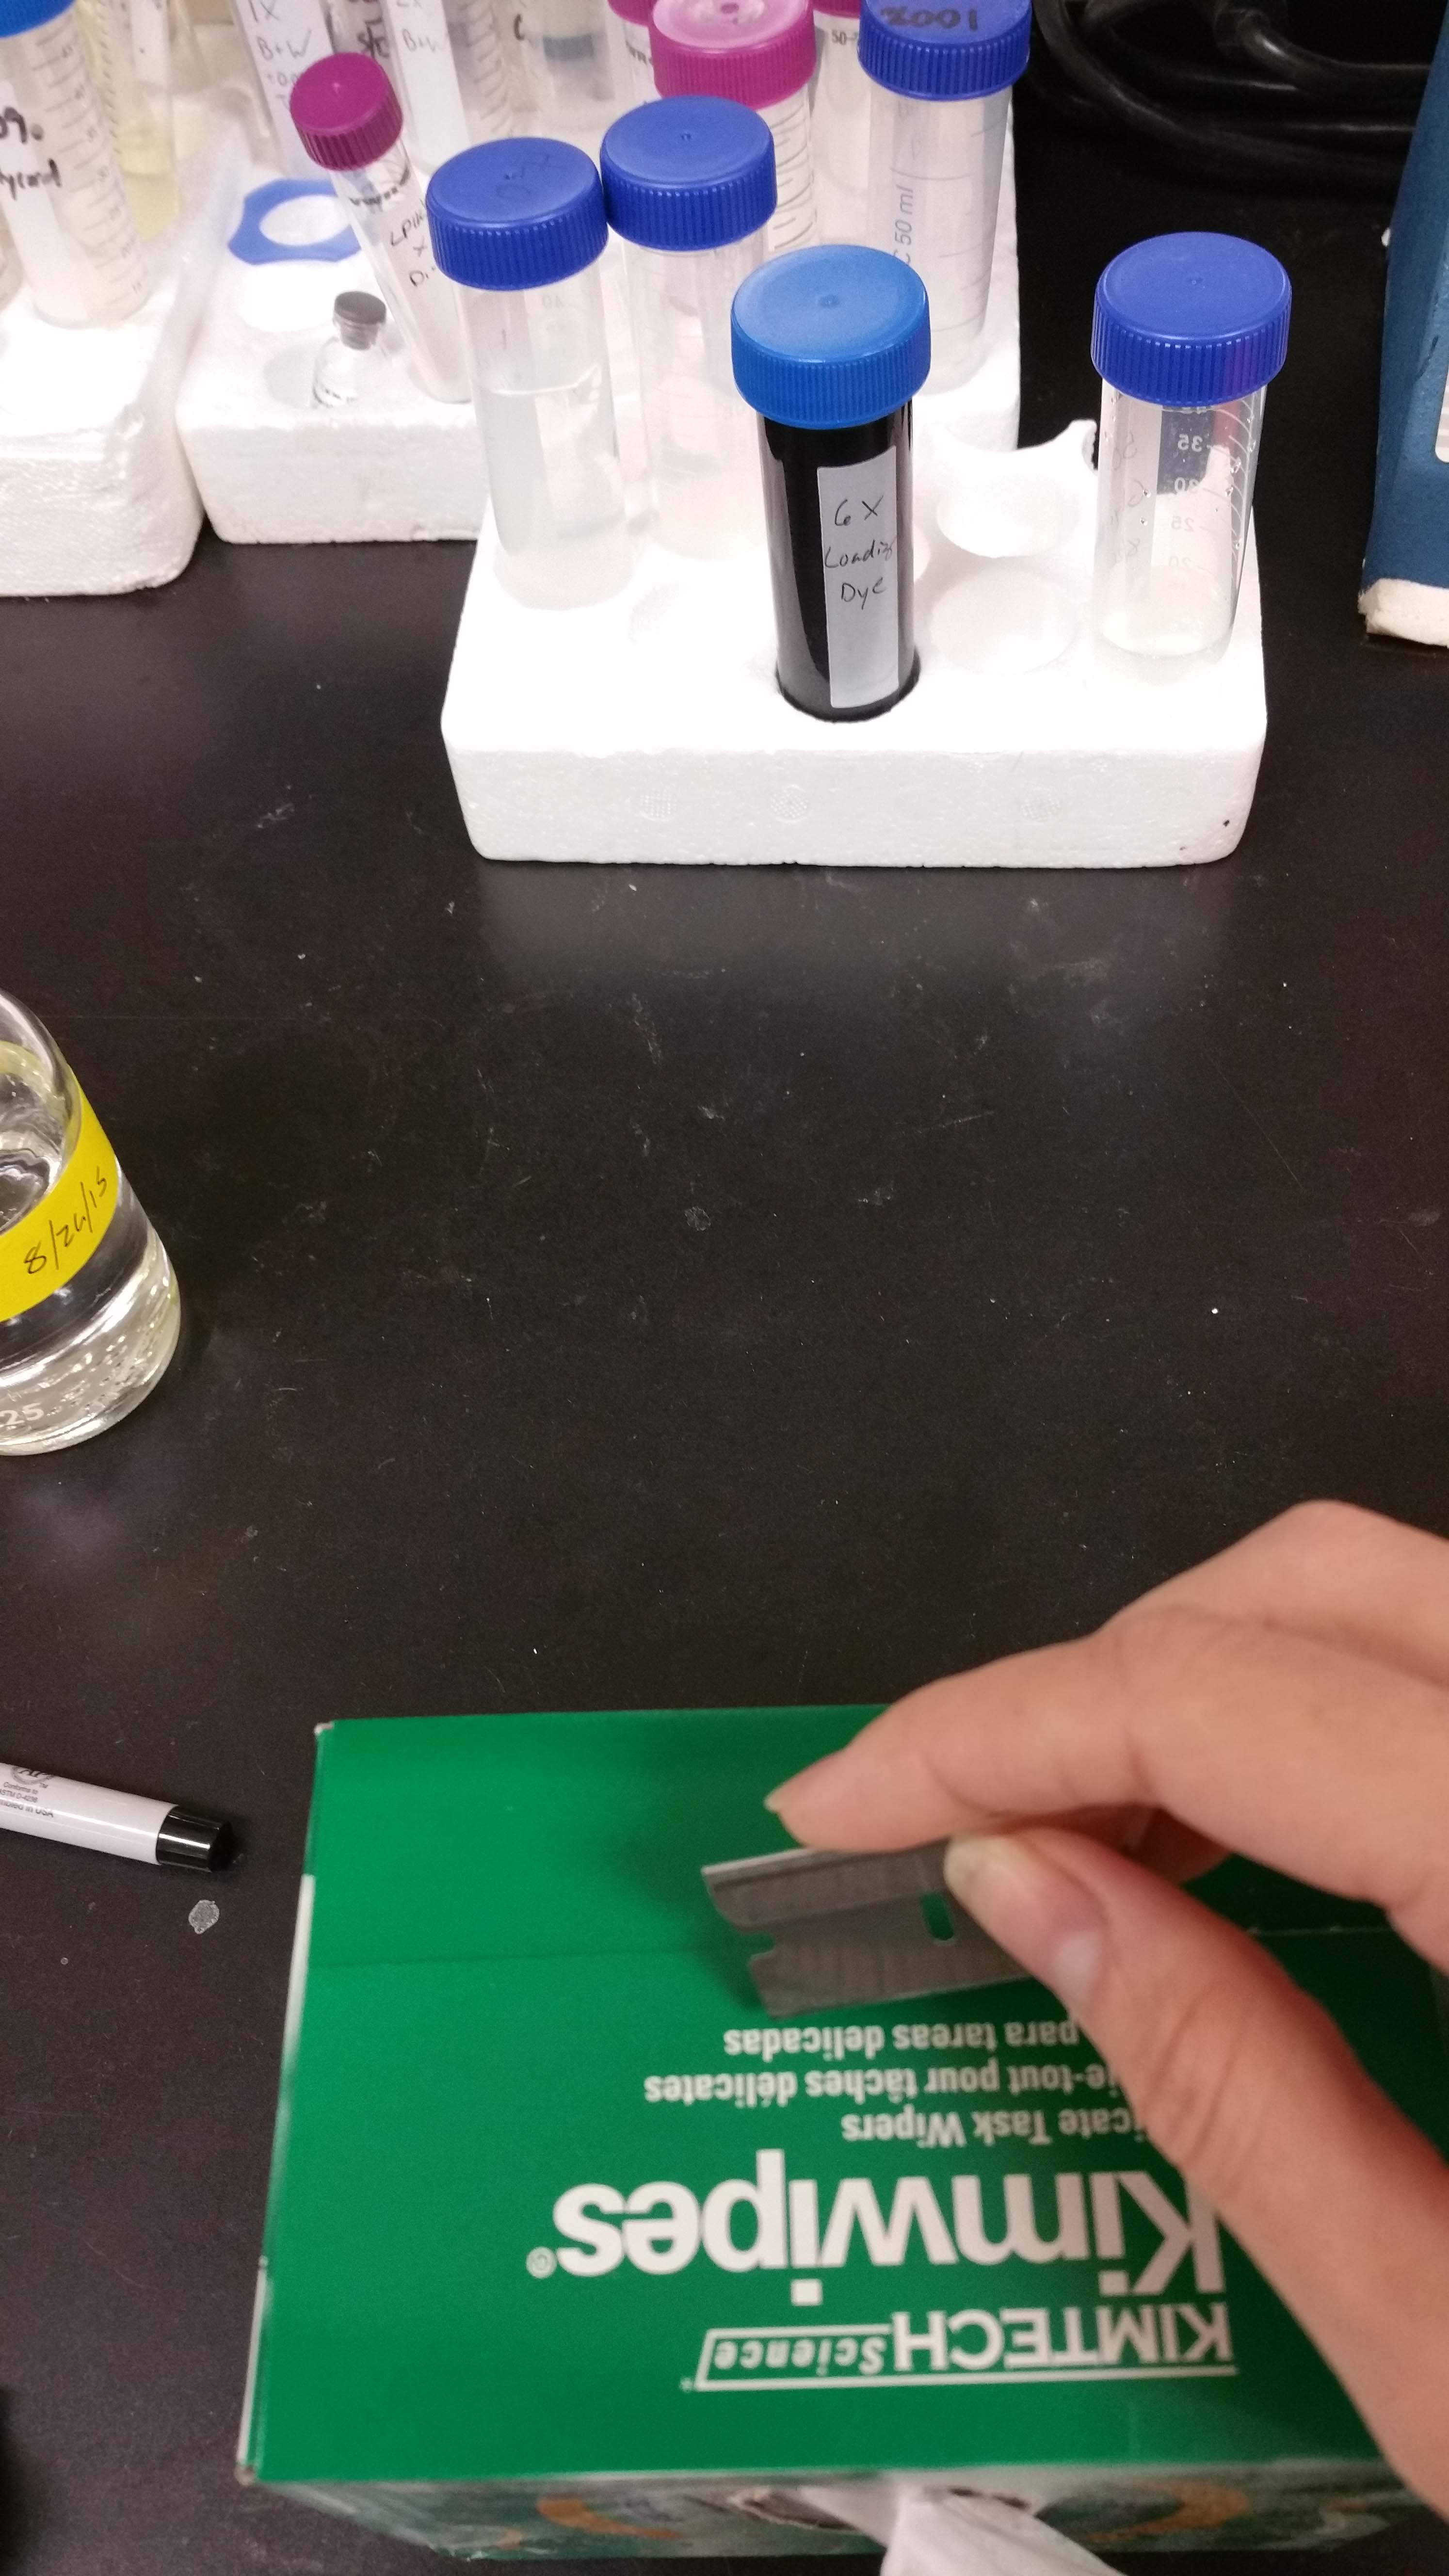 25 Real Lab Hacks from Researchers Like You - Mount Kimwipes to your lab bench with binder clips